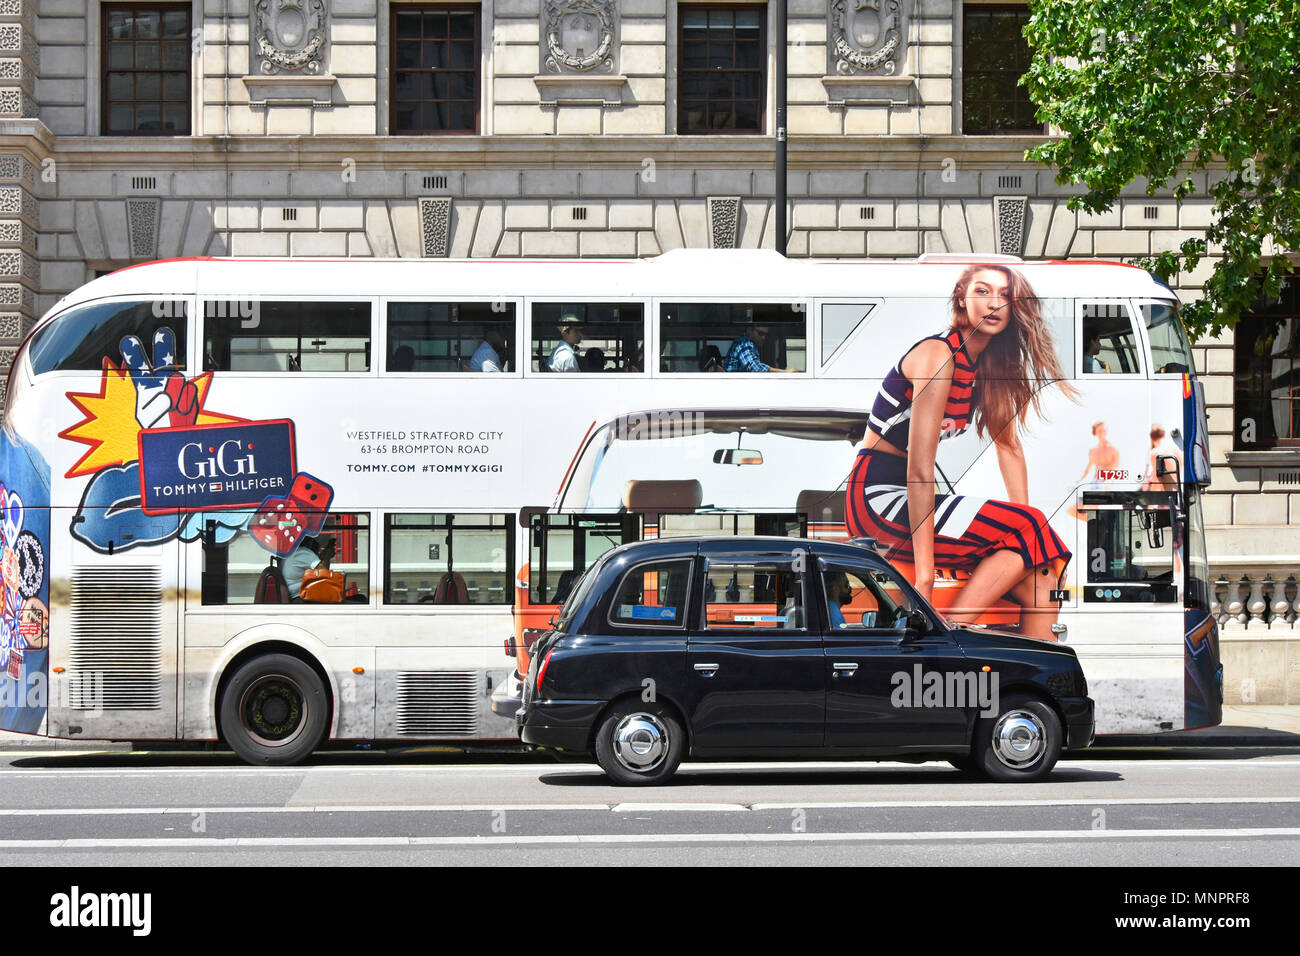 Whitehall London street scene black cab passing advertisement side view of London public transport bus with fashion model sitting on front of taxi UK Stock Photo